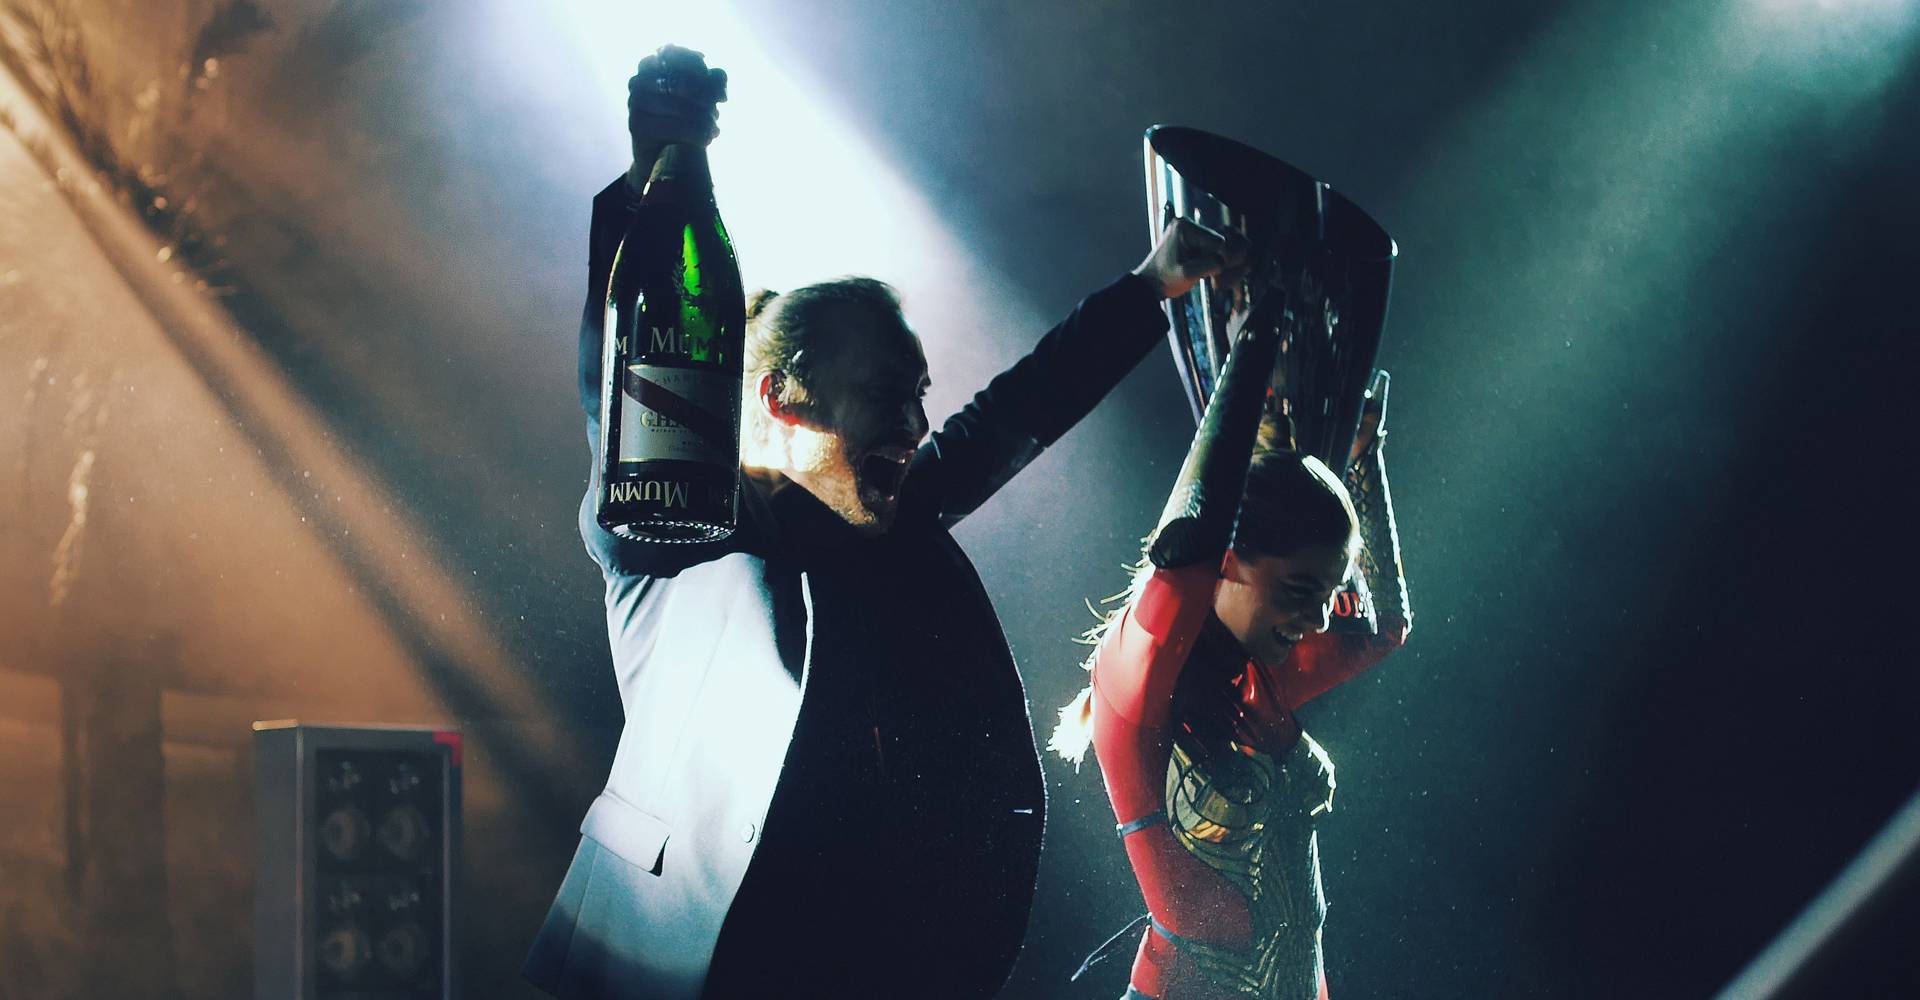 Mumm Champagne   Launched with David Guetta